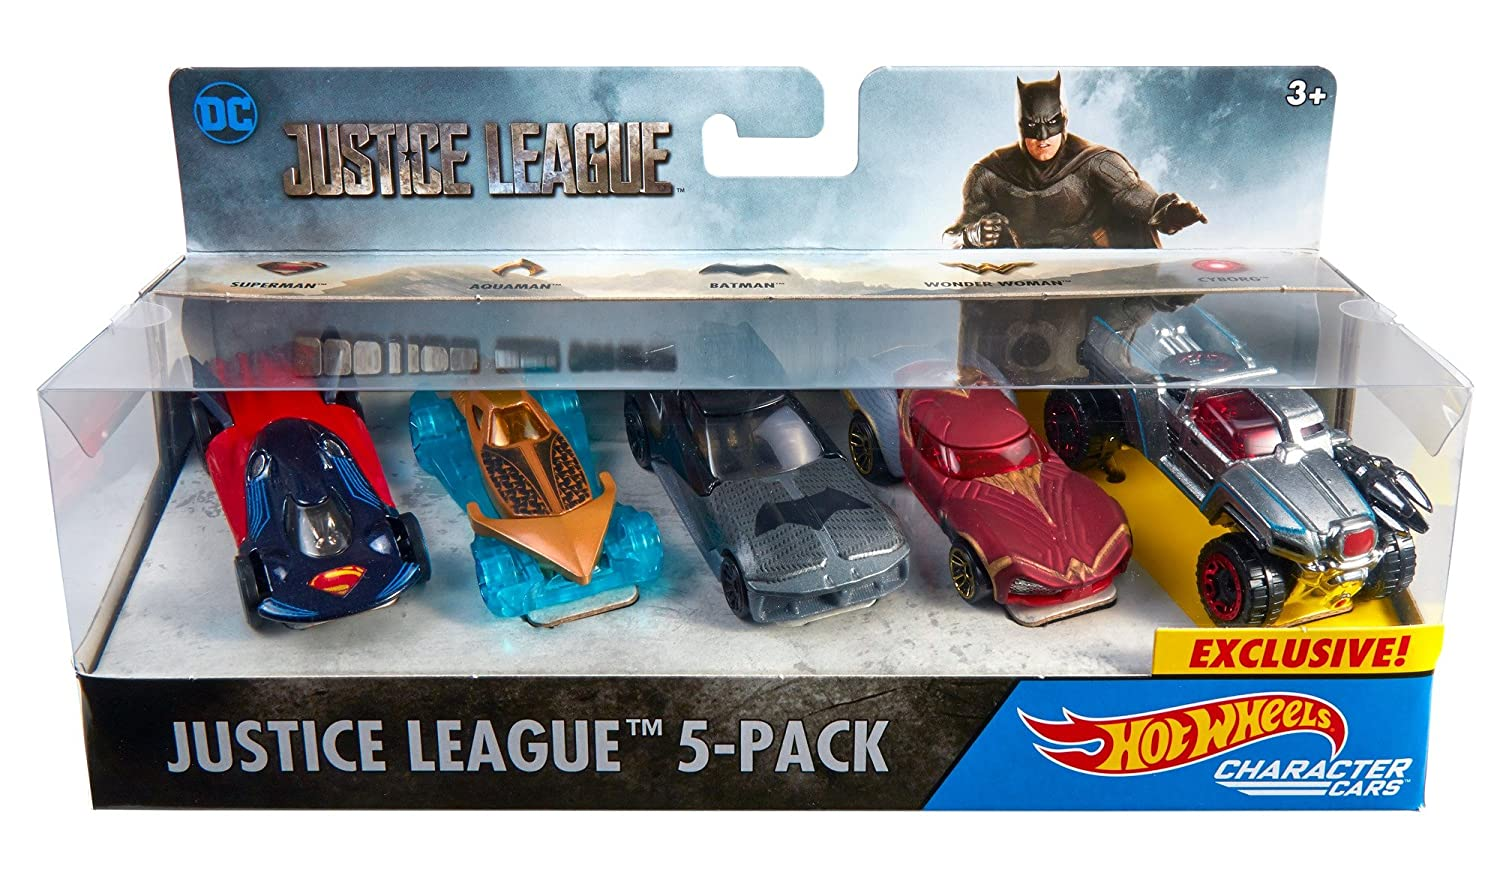 Hot Wheels Justice League Toy Vehicle Amazon Exclusive